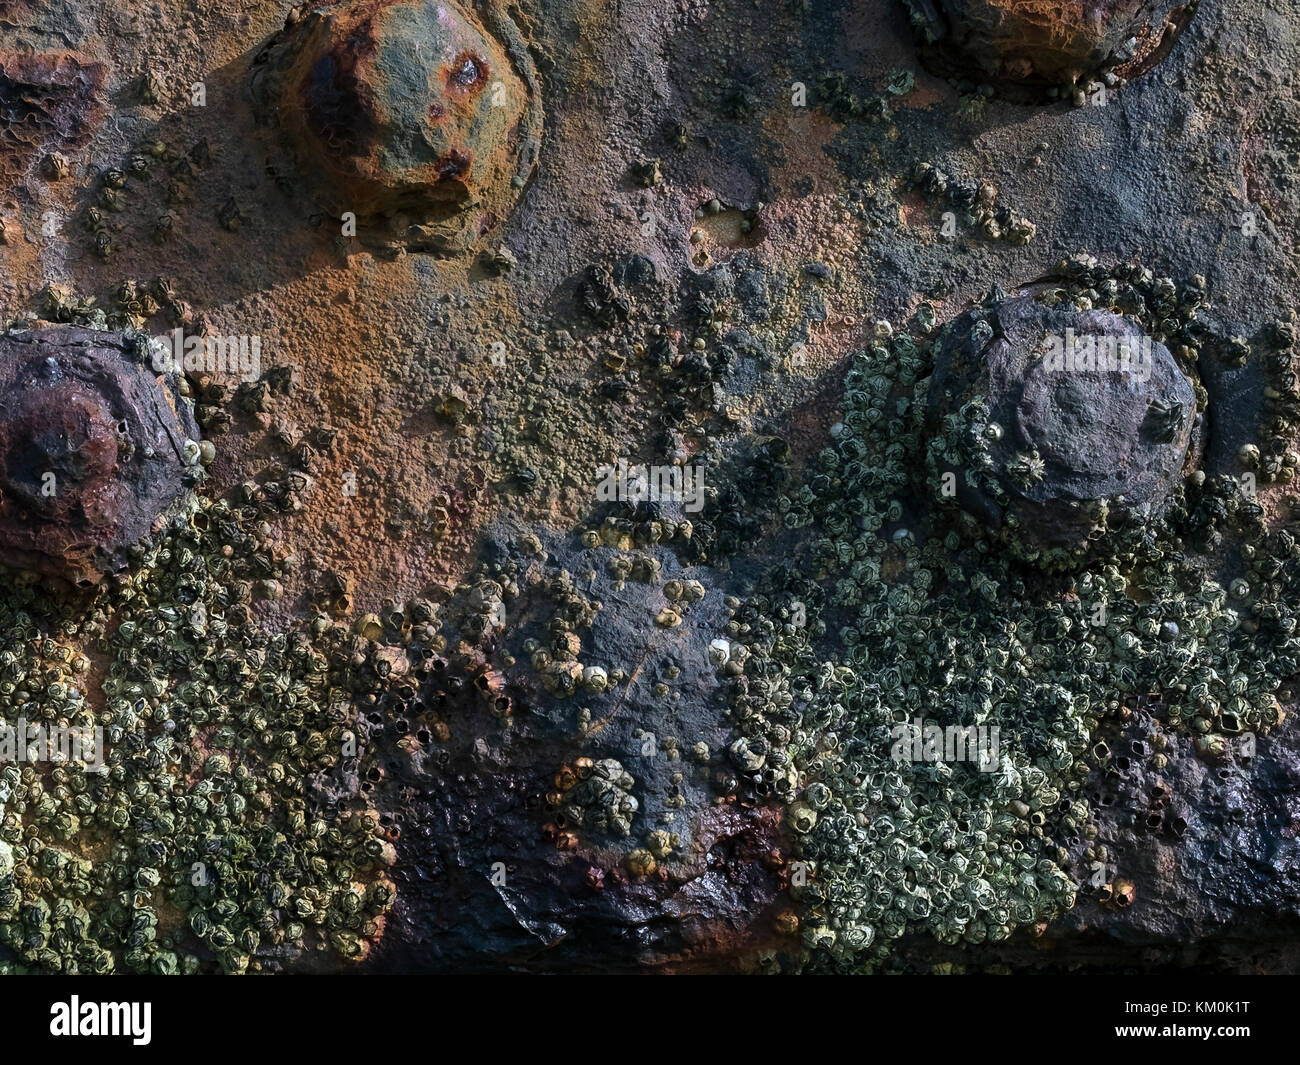 Barnacle clusters on a rusting post on the beach. - Stock Image